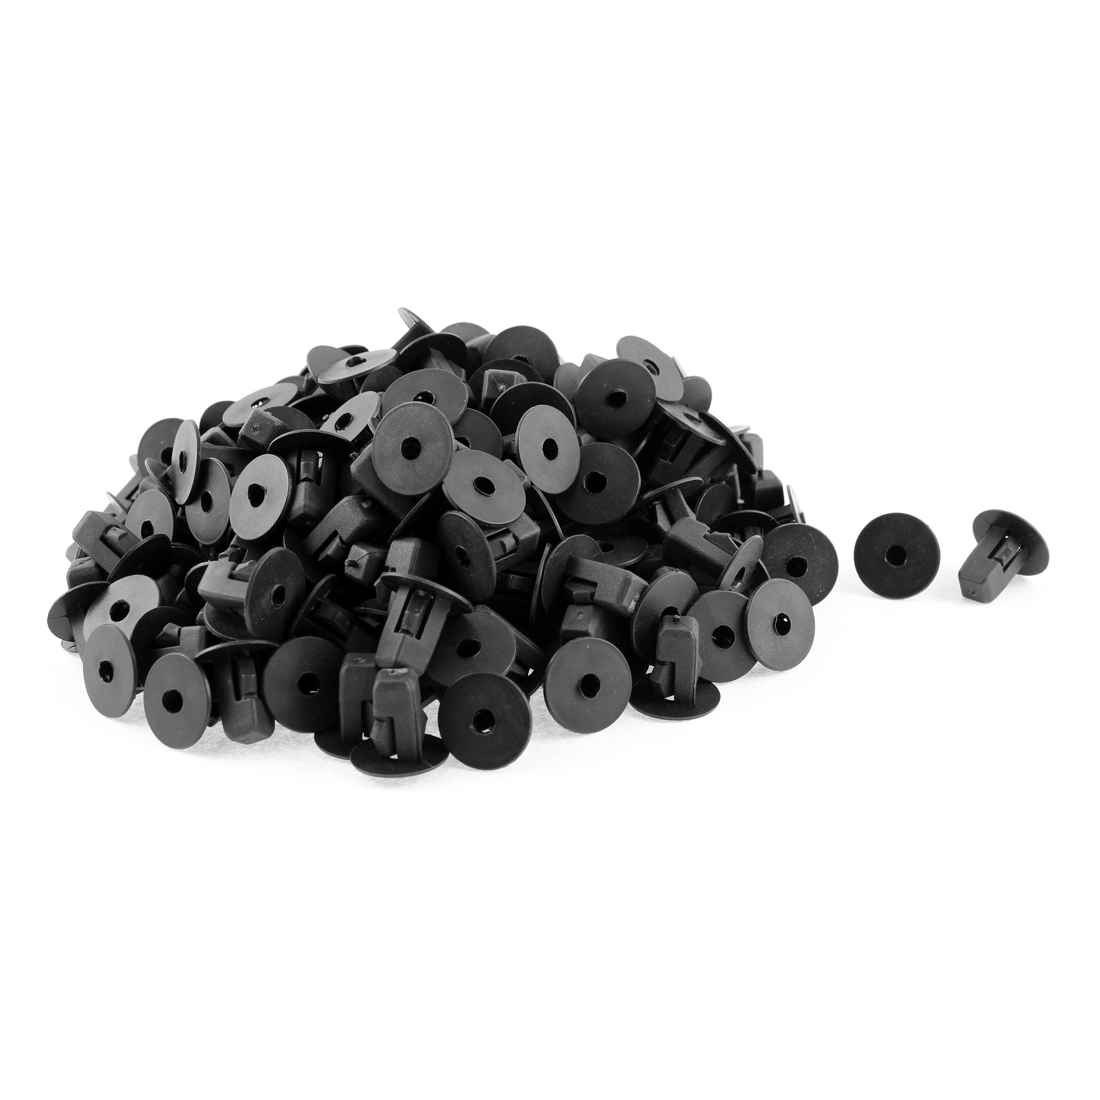 200Pcs Black Plastic Fender Bumper Boot Retainer Rivet for Toyota